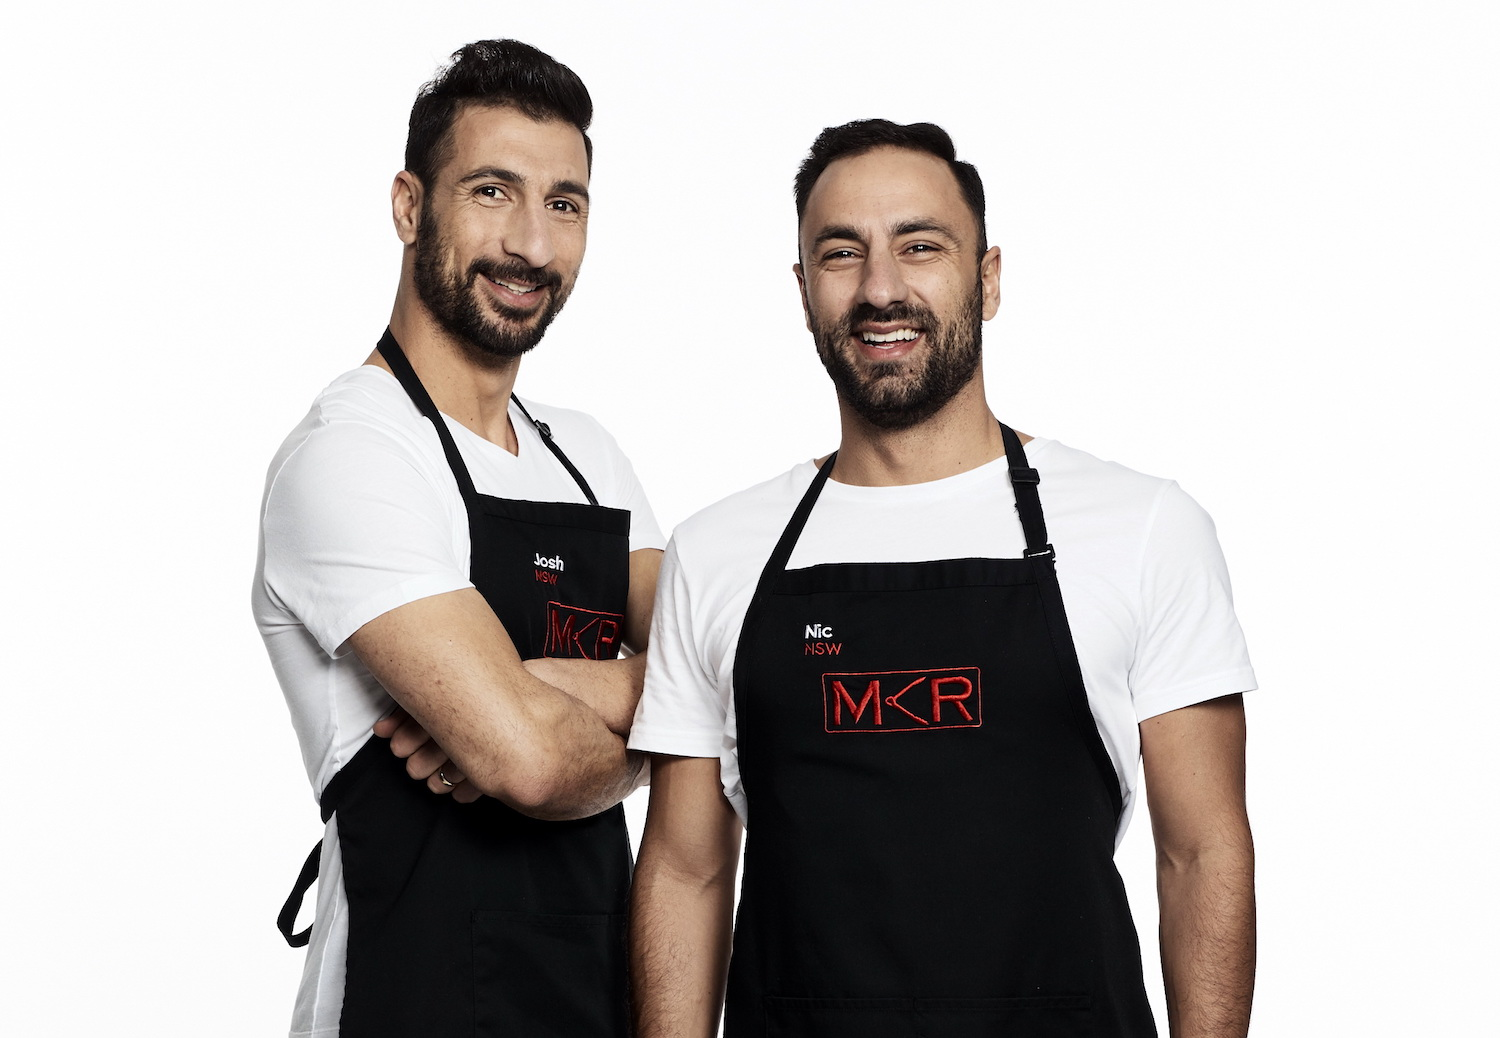 MKR\'s Josh and Nic win the show\'s ice cream challenge | WHO Magazine